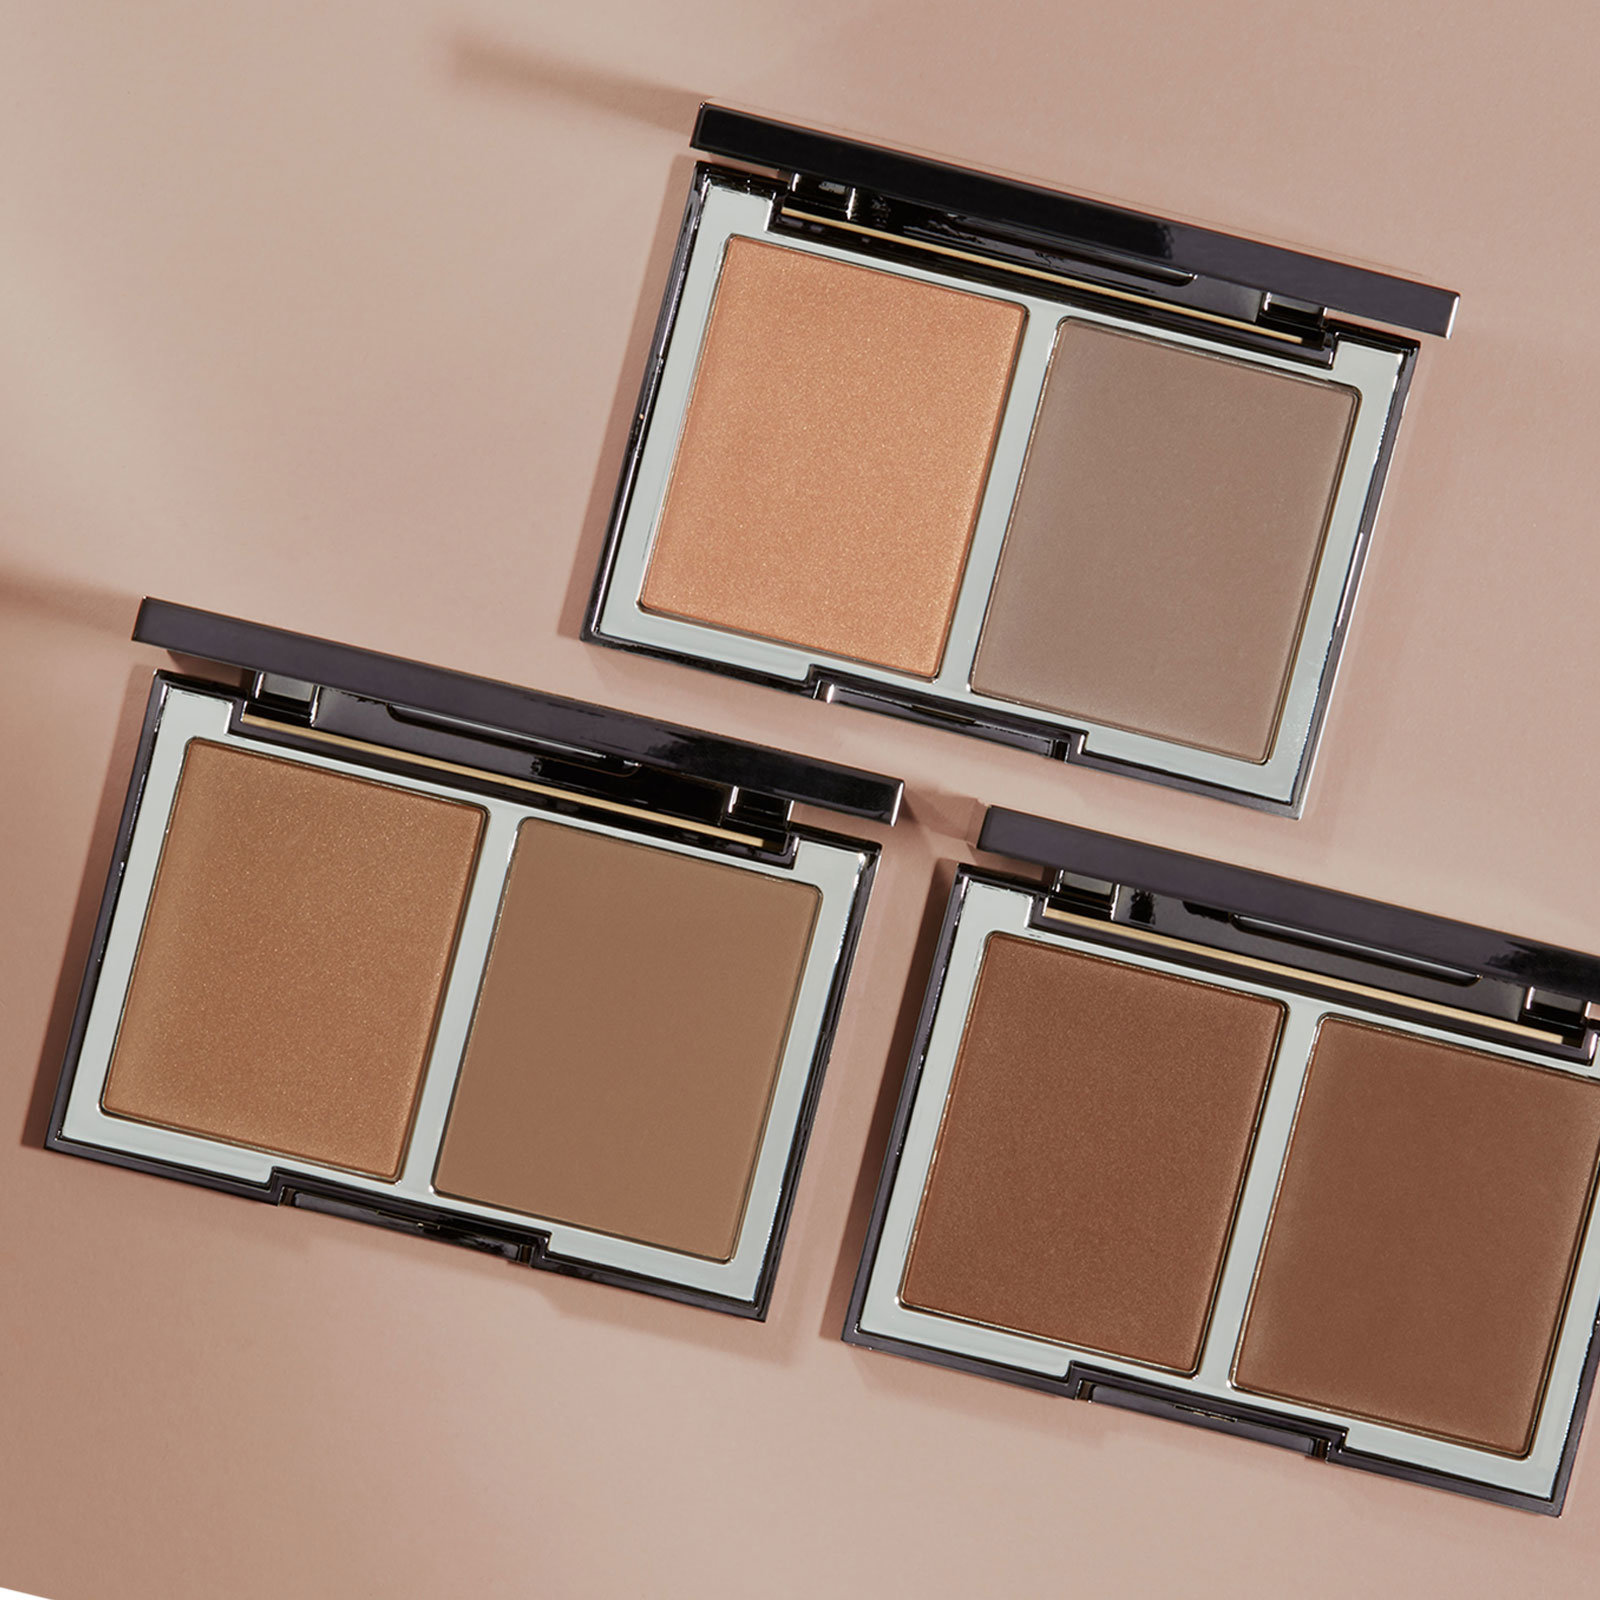 Alternate product image for The Radiance Boosting Face Palette Collection shown with the description.